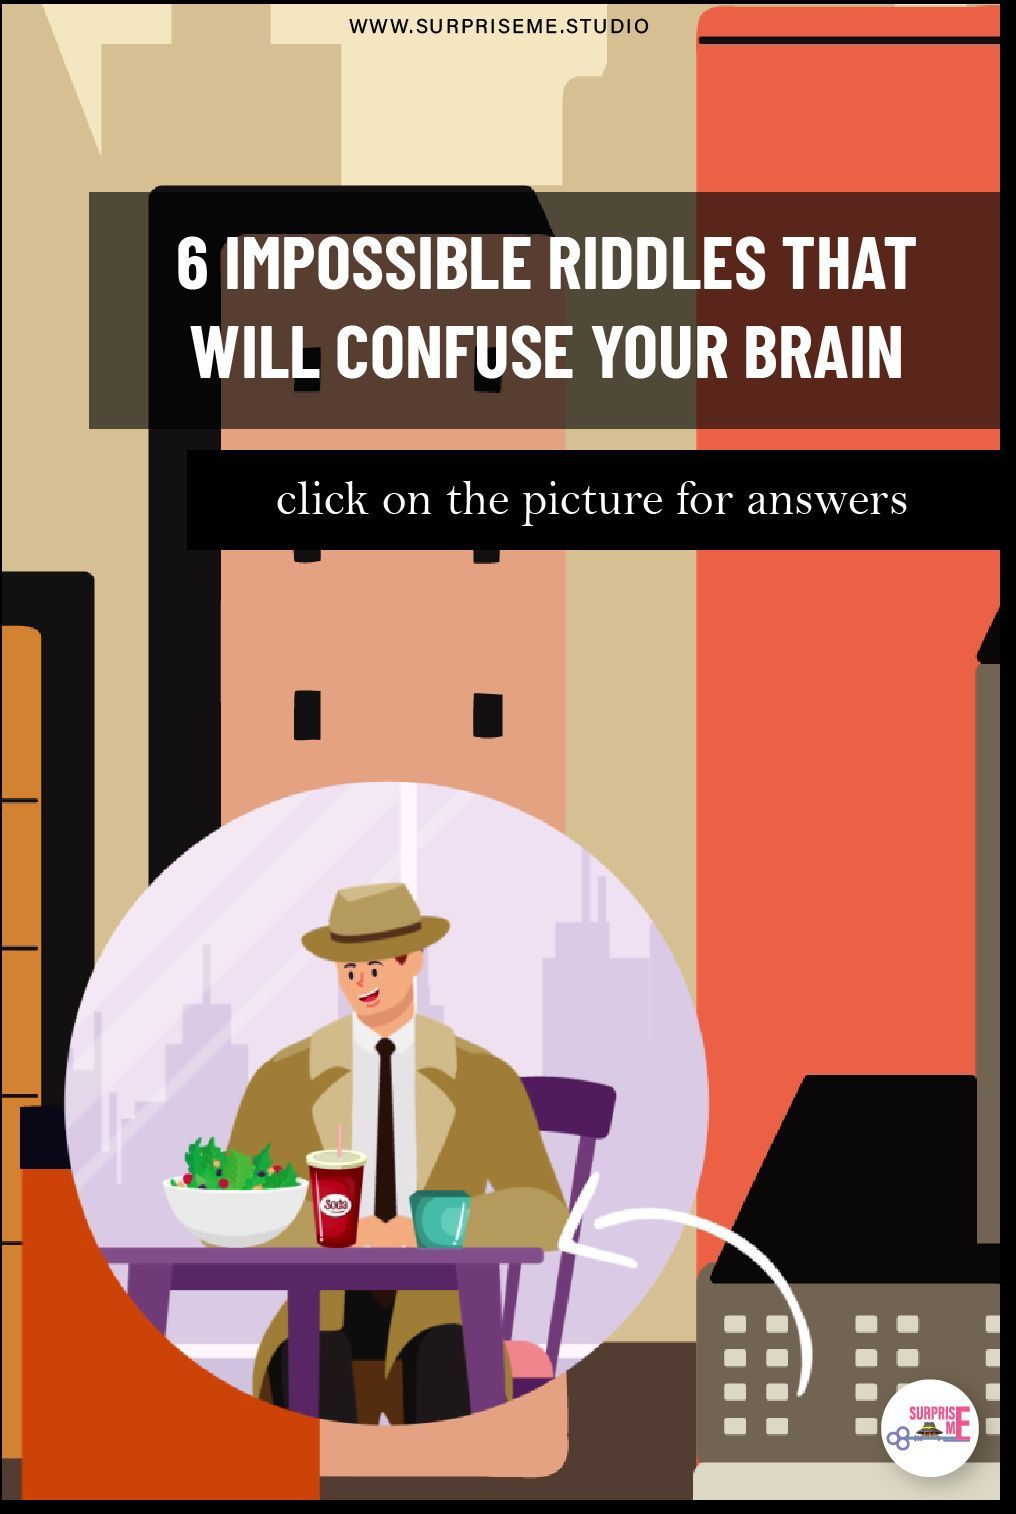 6 Impossible Riddles That Will Confuse Your Brain in 2020